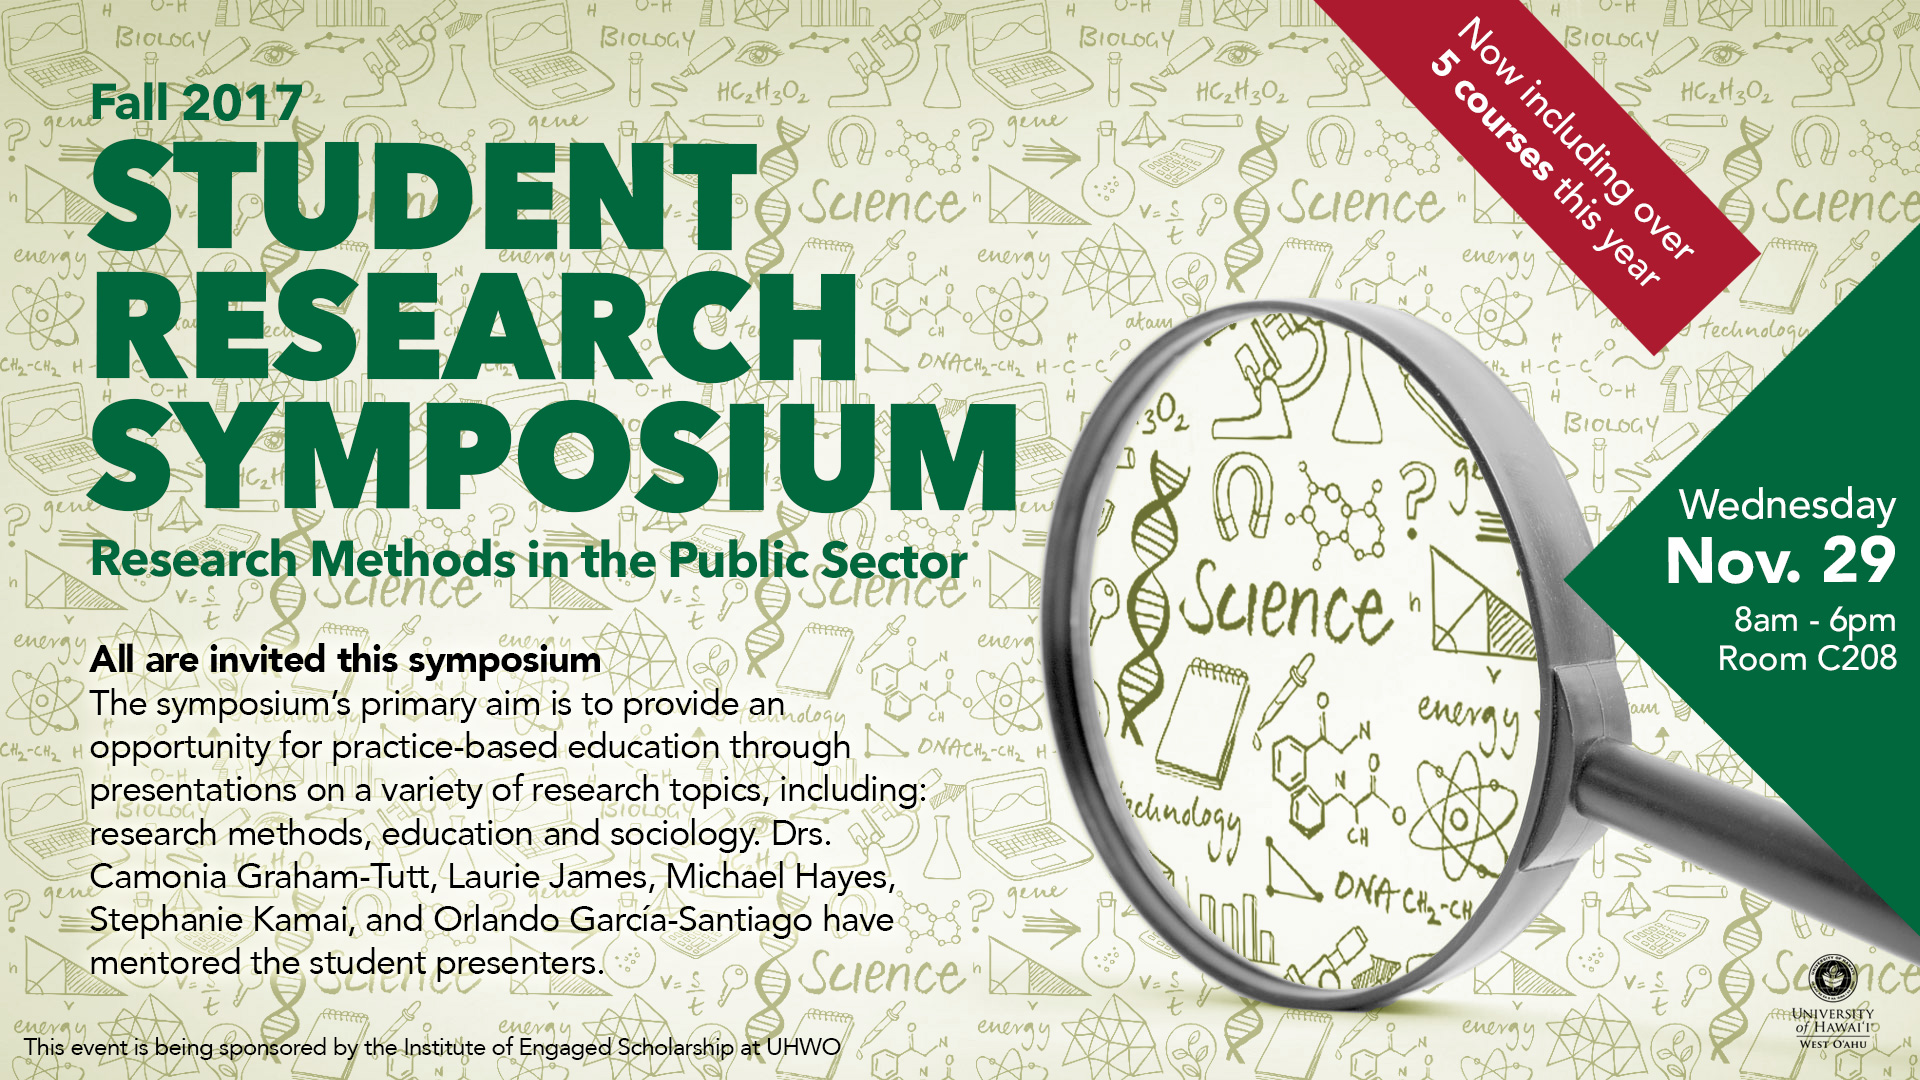 Flyer advertising Fall 2017 Student Research Symposium